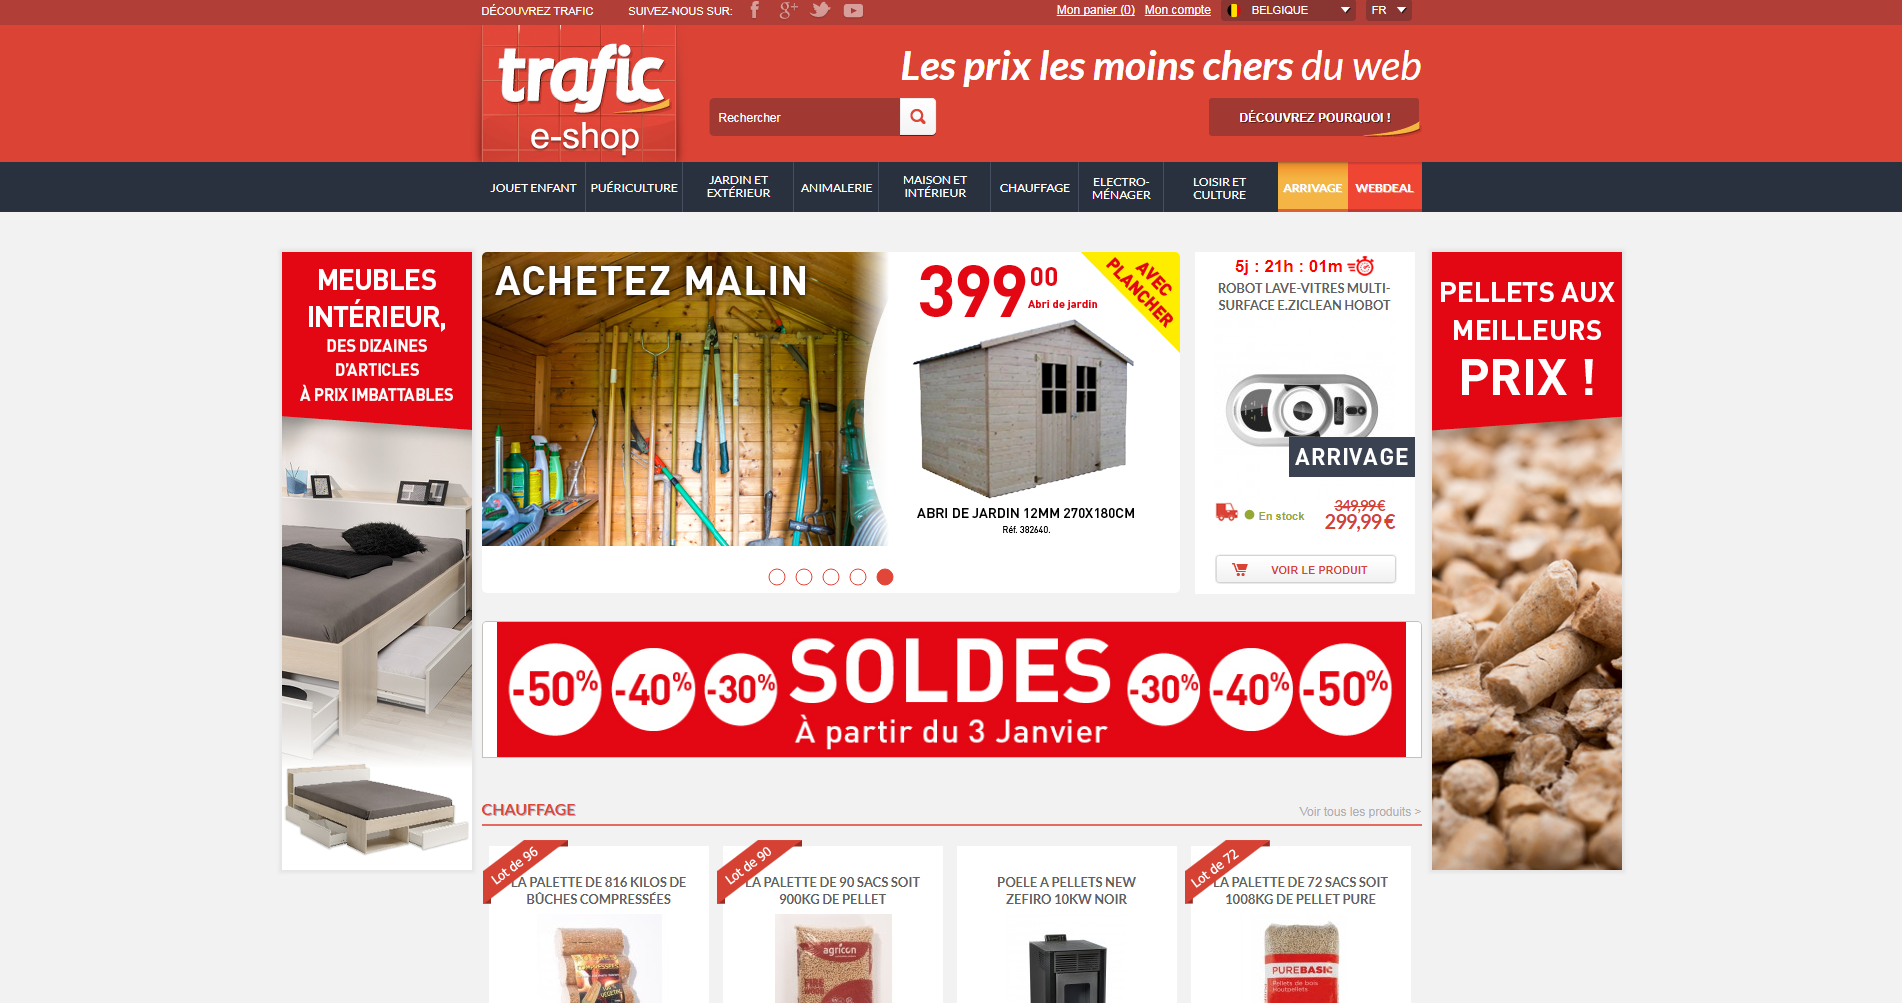 Trafic - Page d'accueil